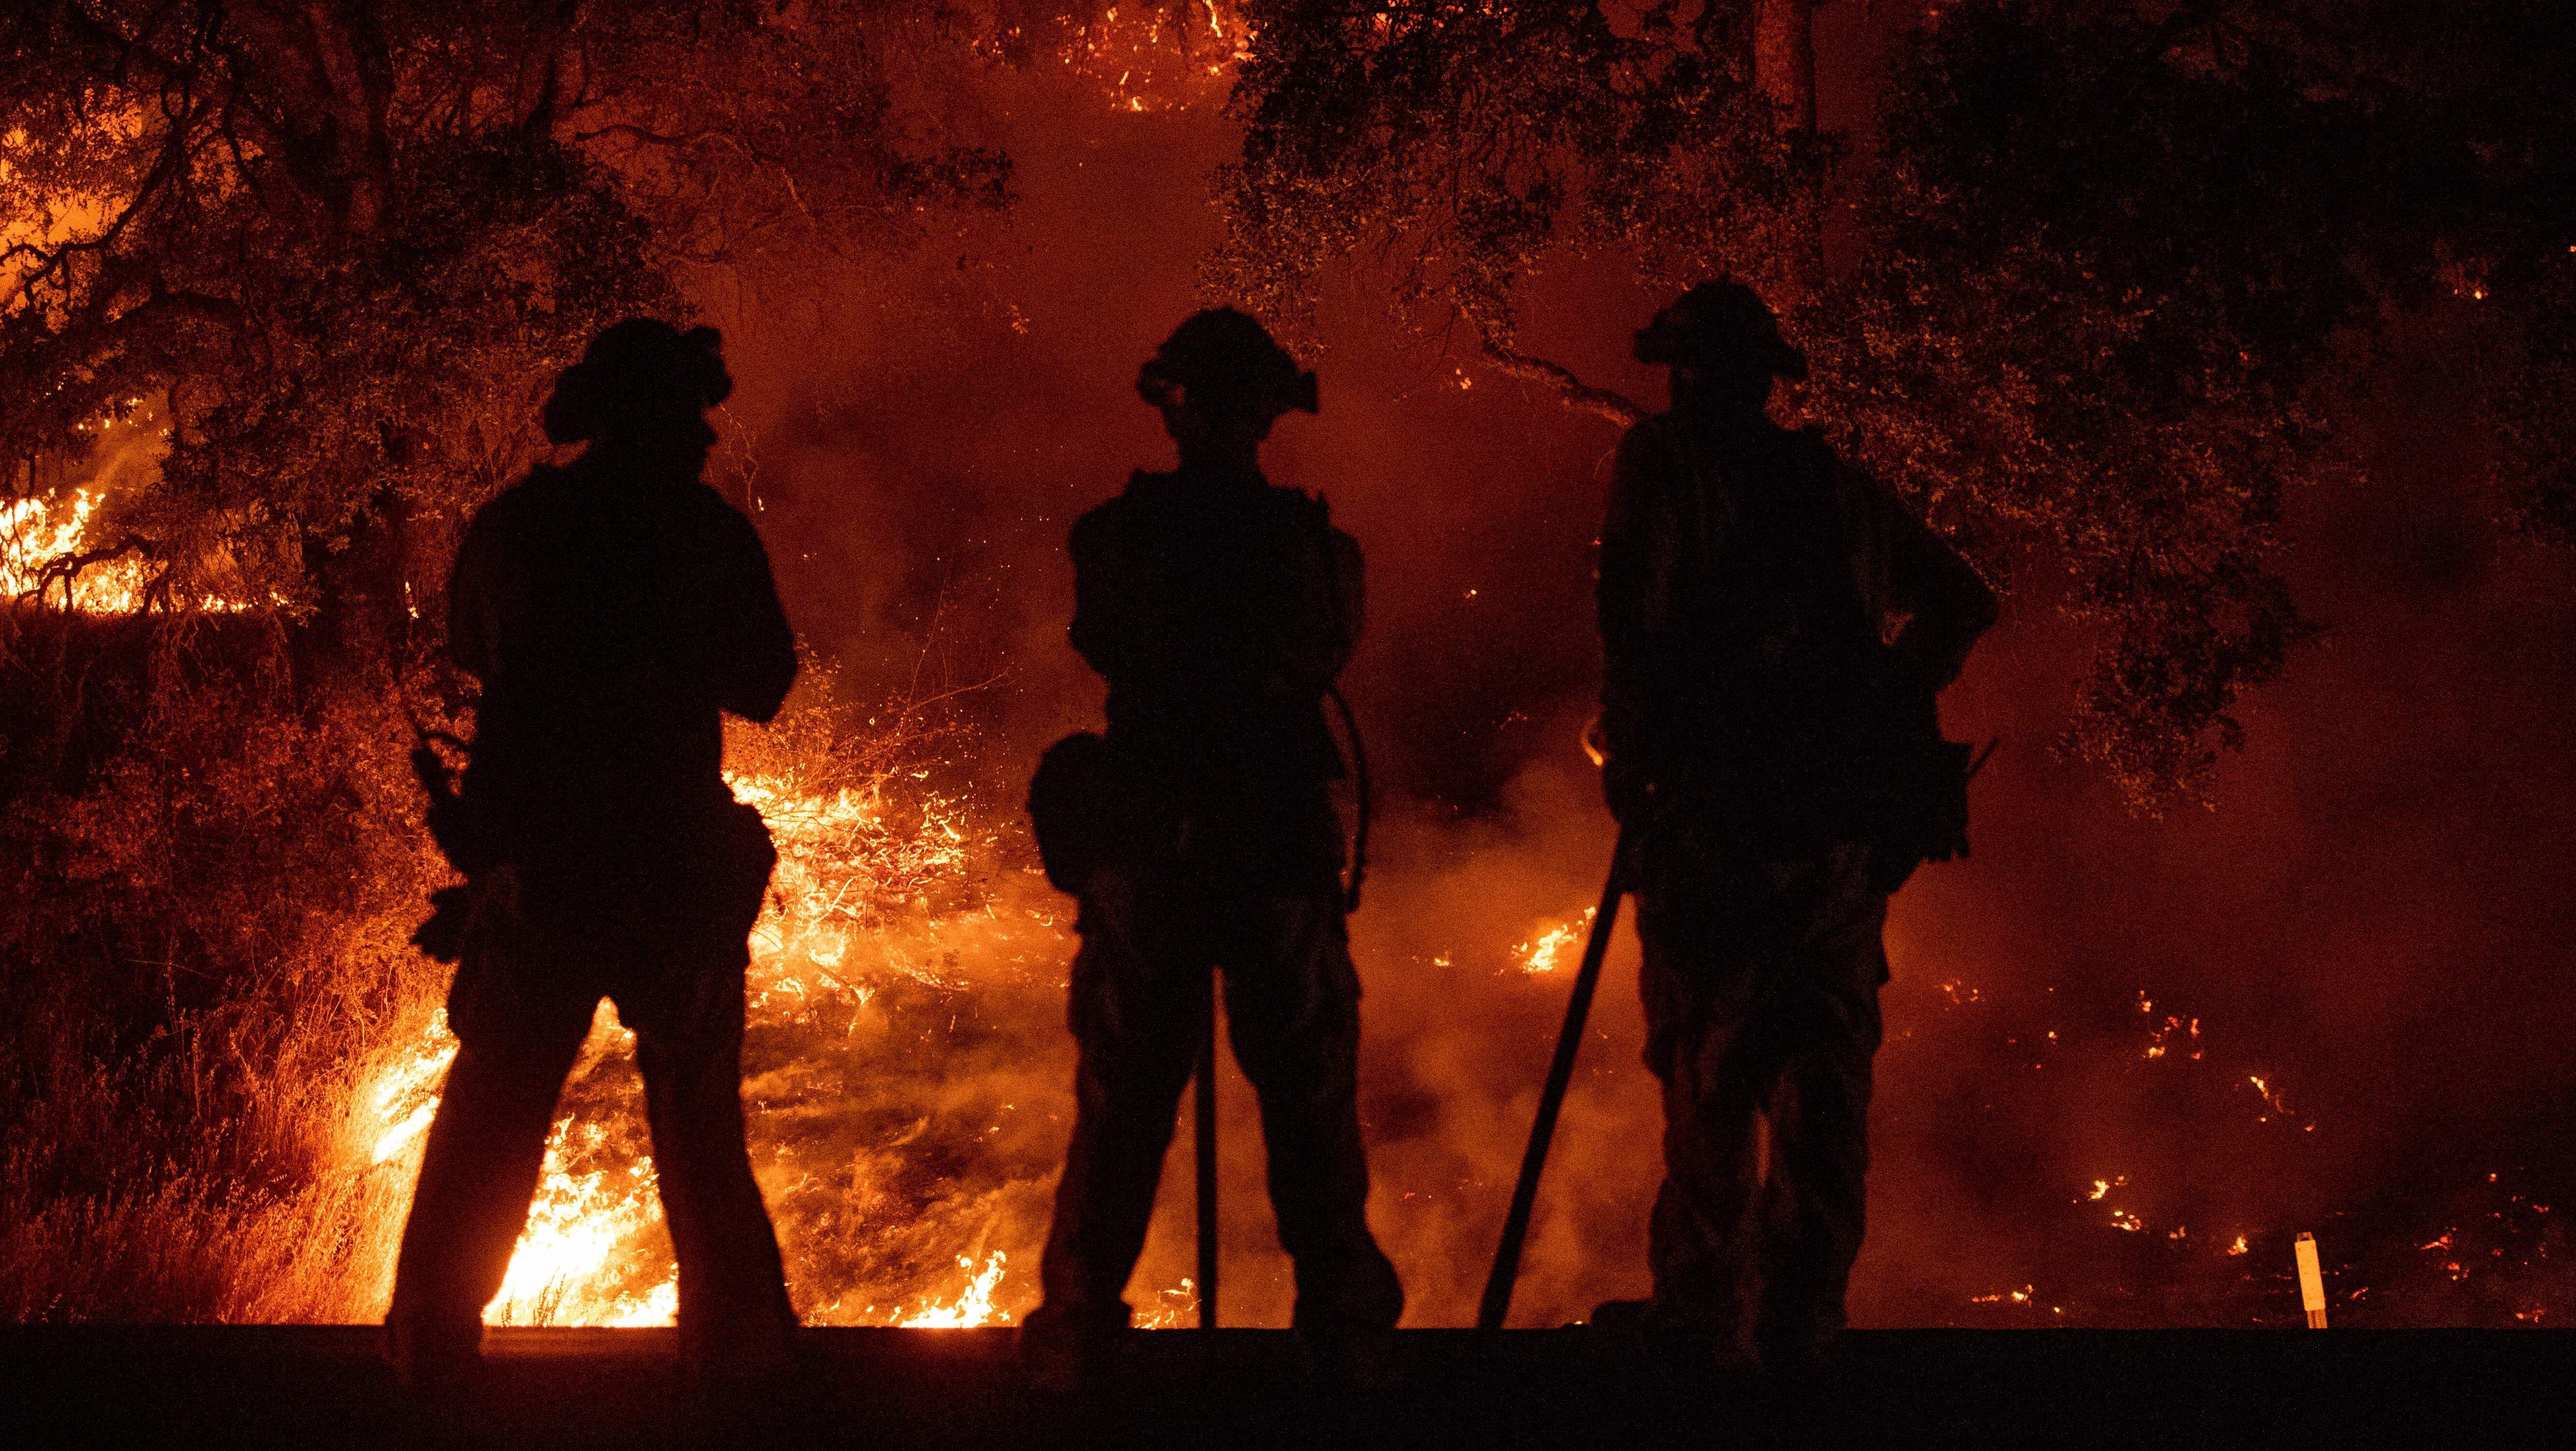 Verizon Throttled Firefighters' Data As Mendocino Wildfire Raged, Fire Chief Says